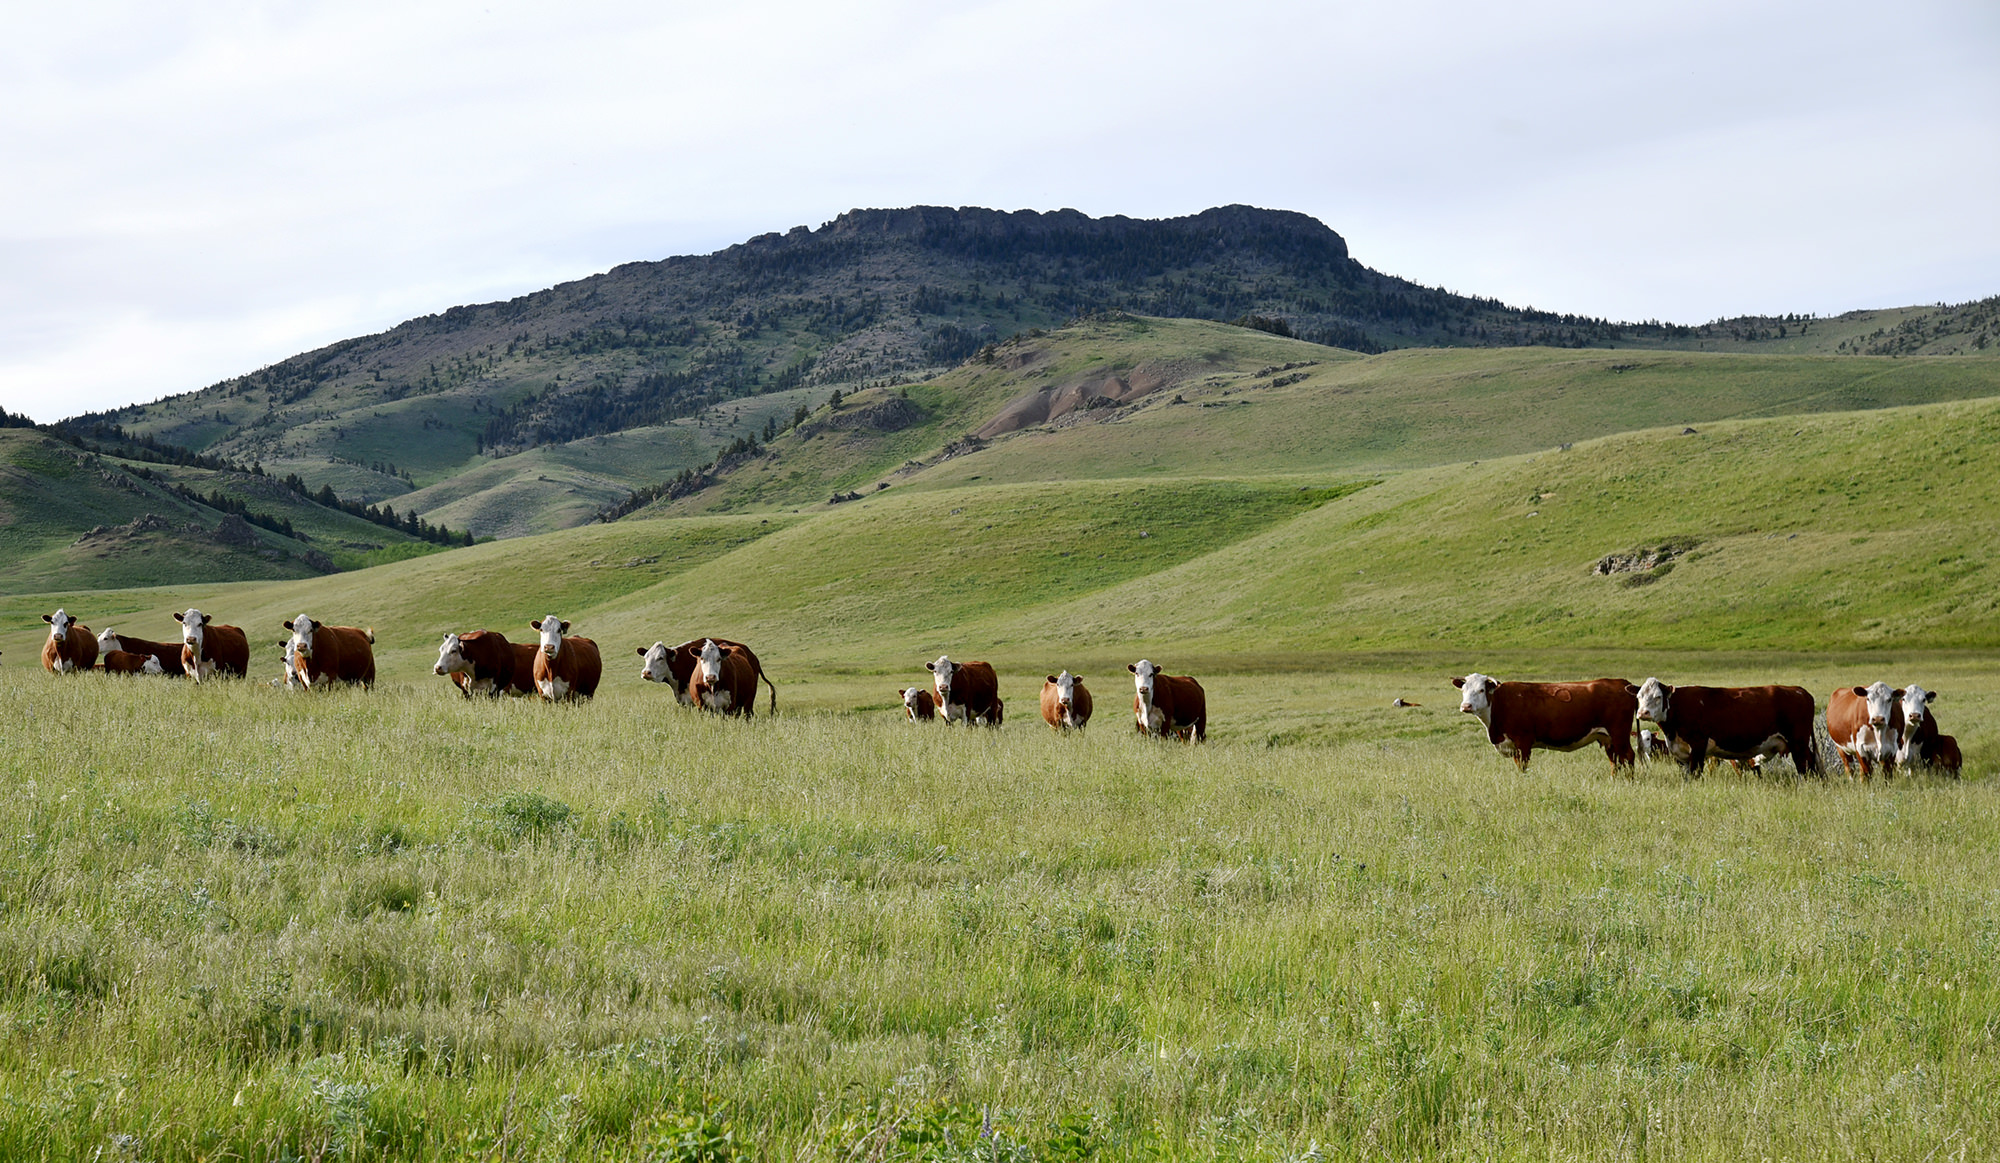 Montana Cattle Ranch For Sale: Strand Ranch | Swan Land Company